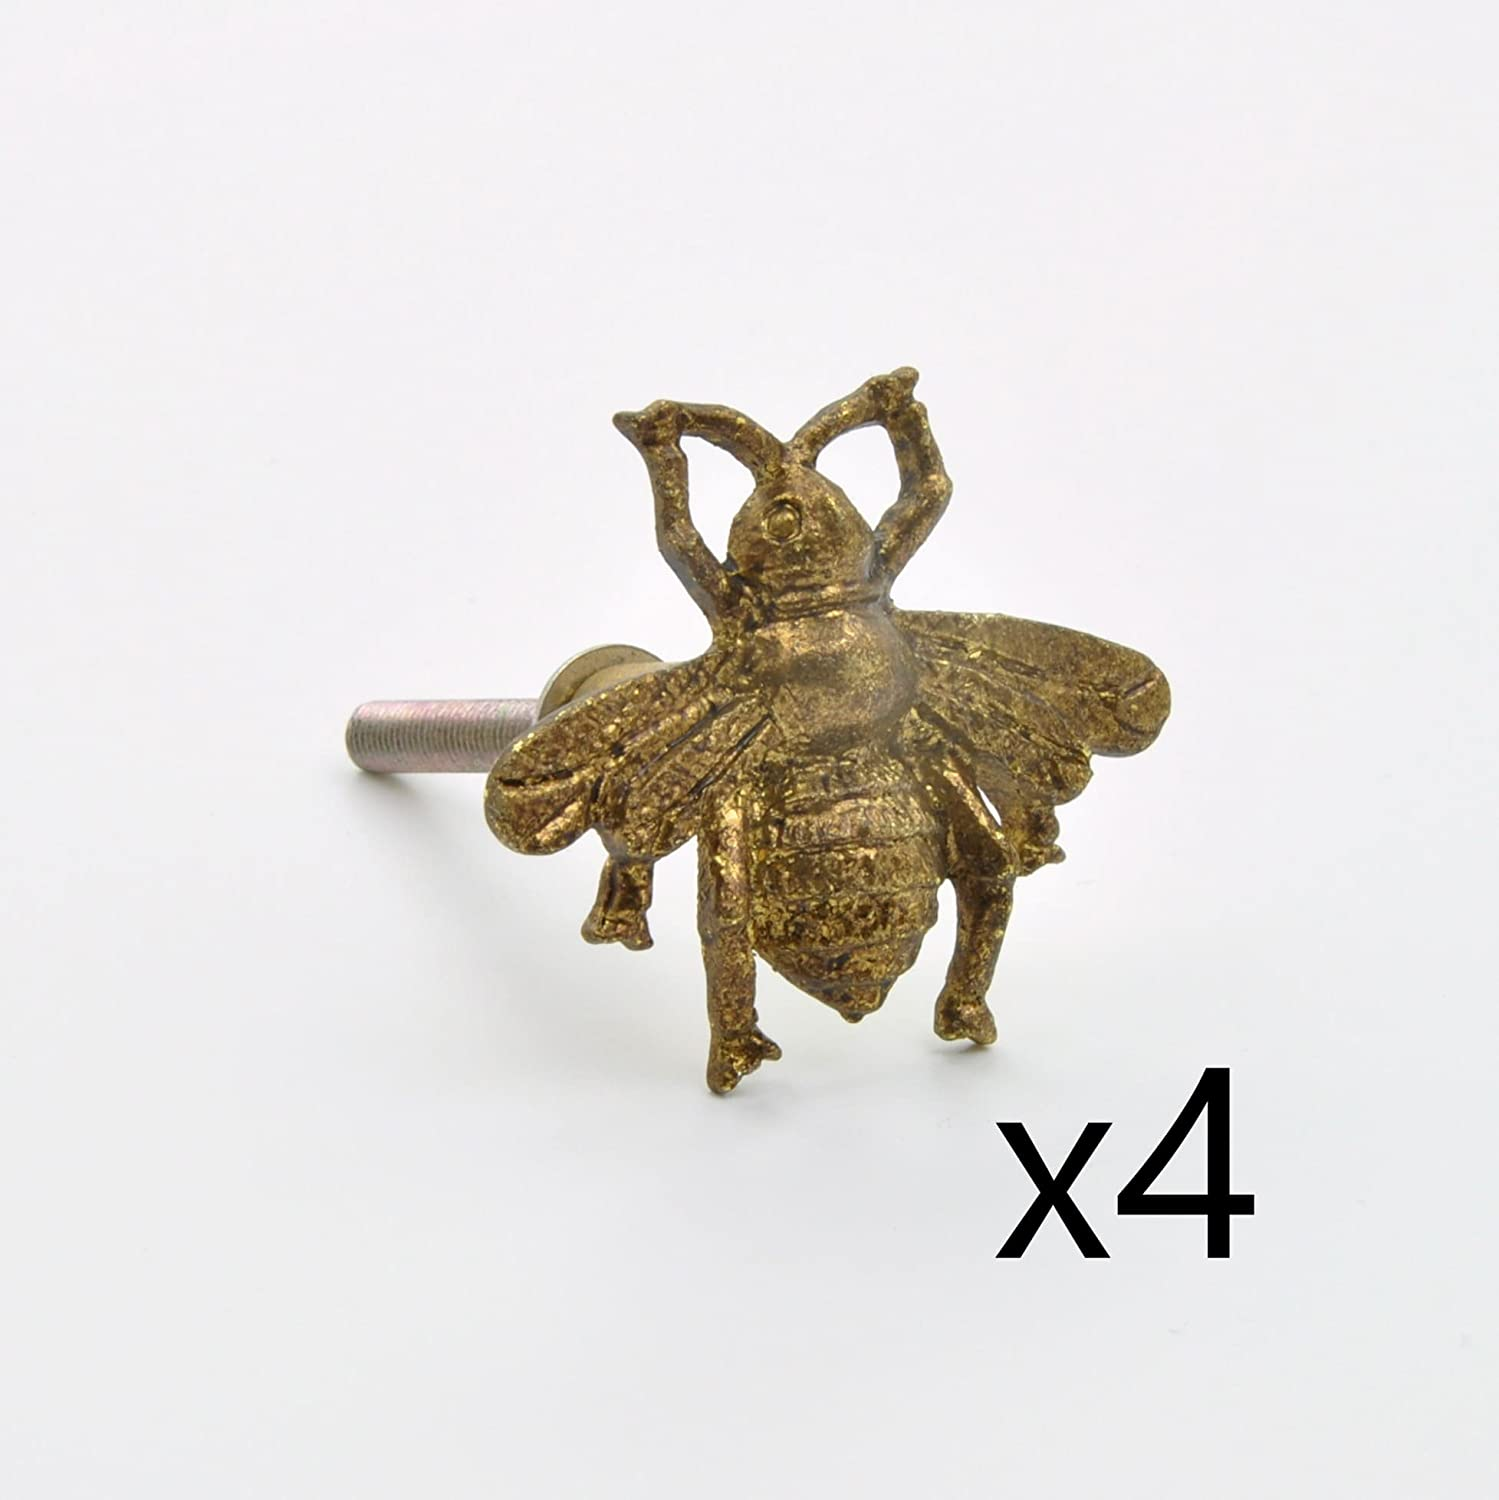 (4 Piece Set of) Antique Brass Cute Golden Gold Brass Bumble Bee Metal Knob, Pull, Handle, for Cupboards, Doors, Cabinets, Drawers, Furniture, Kitchens (Plus Fitting Hardware) abodent.com